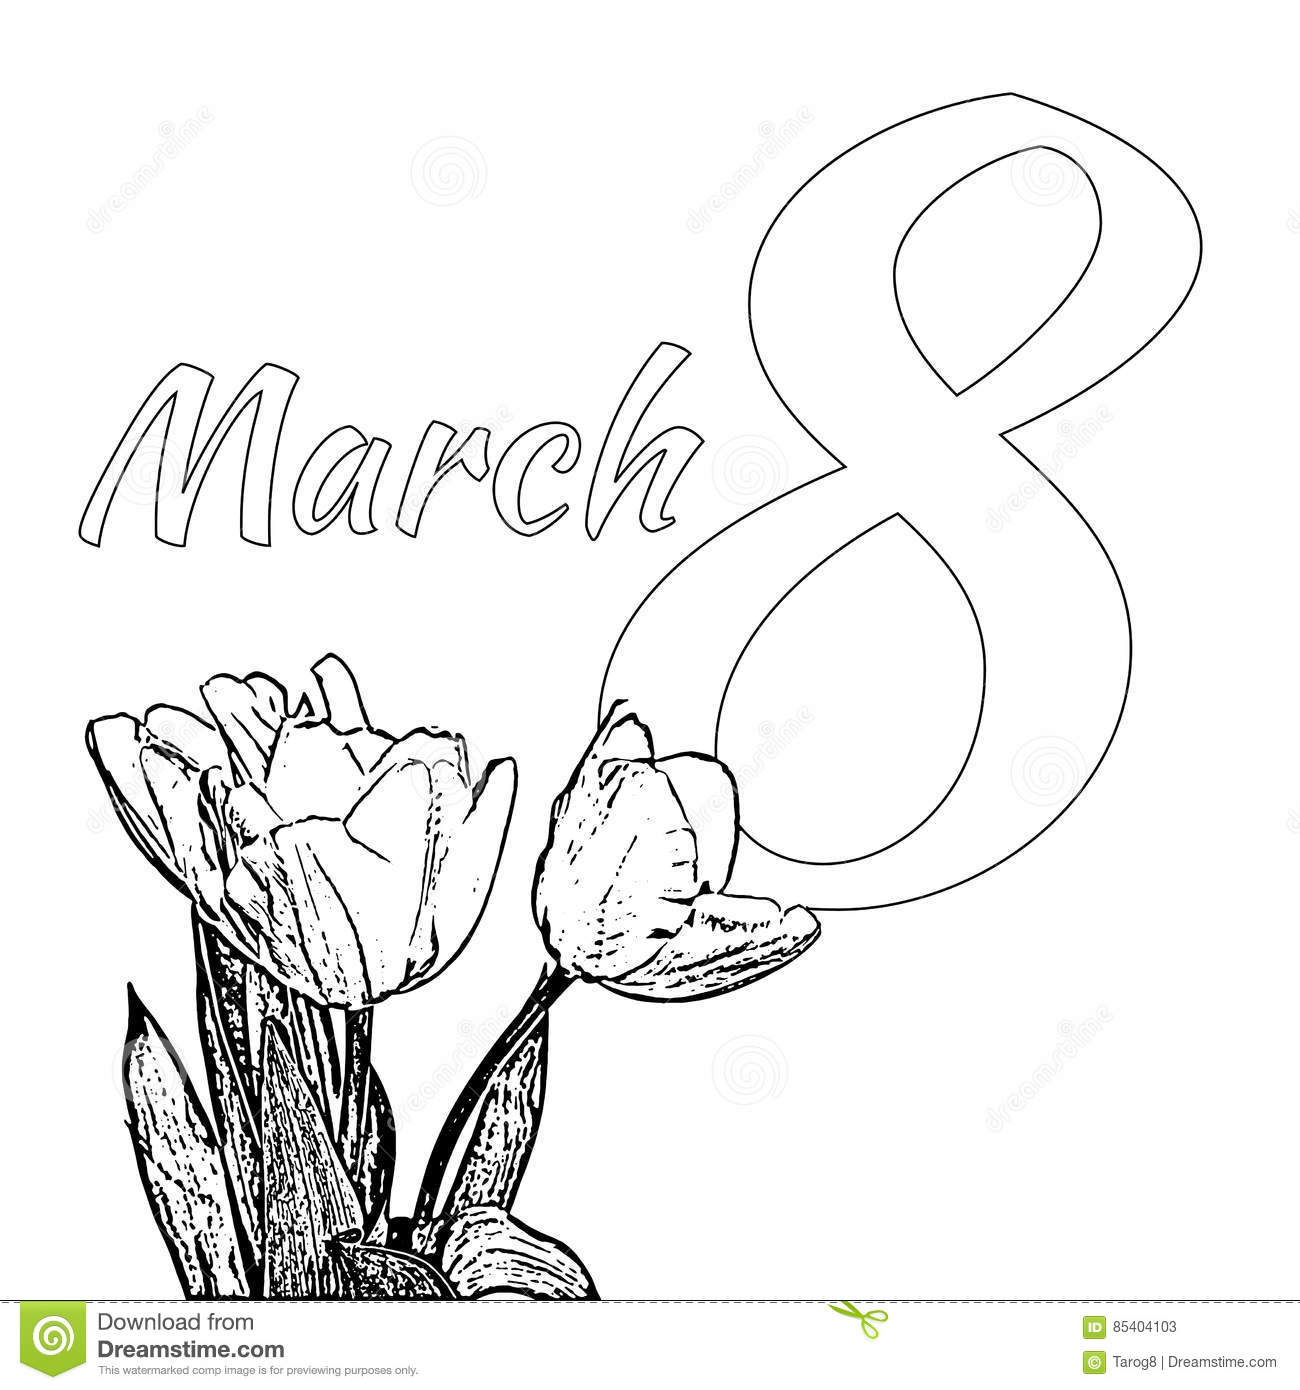 Peppy in March coloring page | Free Printable Coloring Pages | 1390x1300